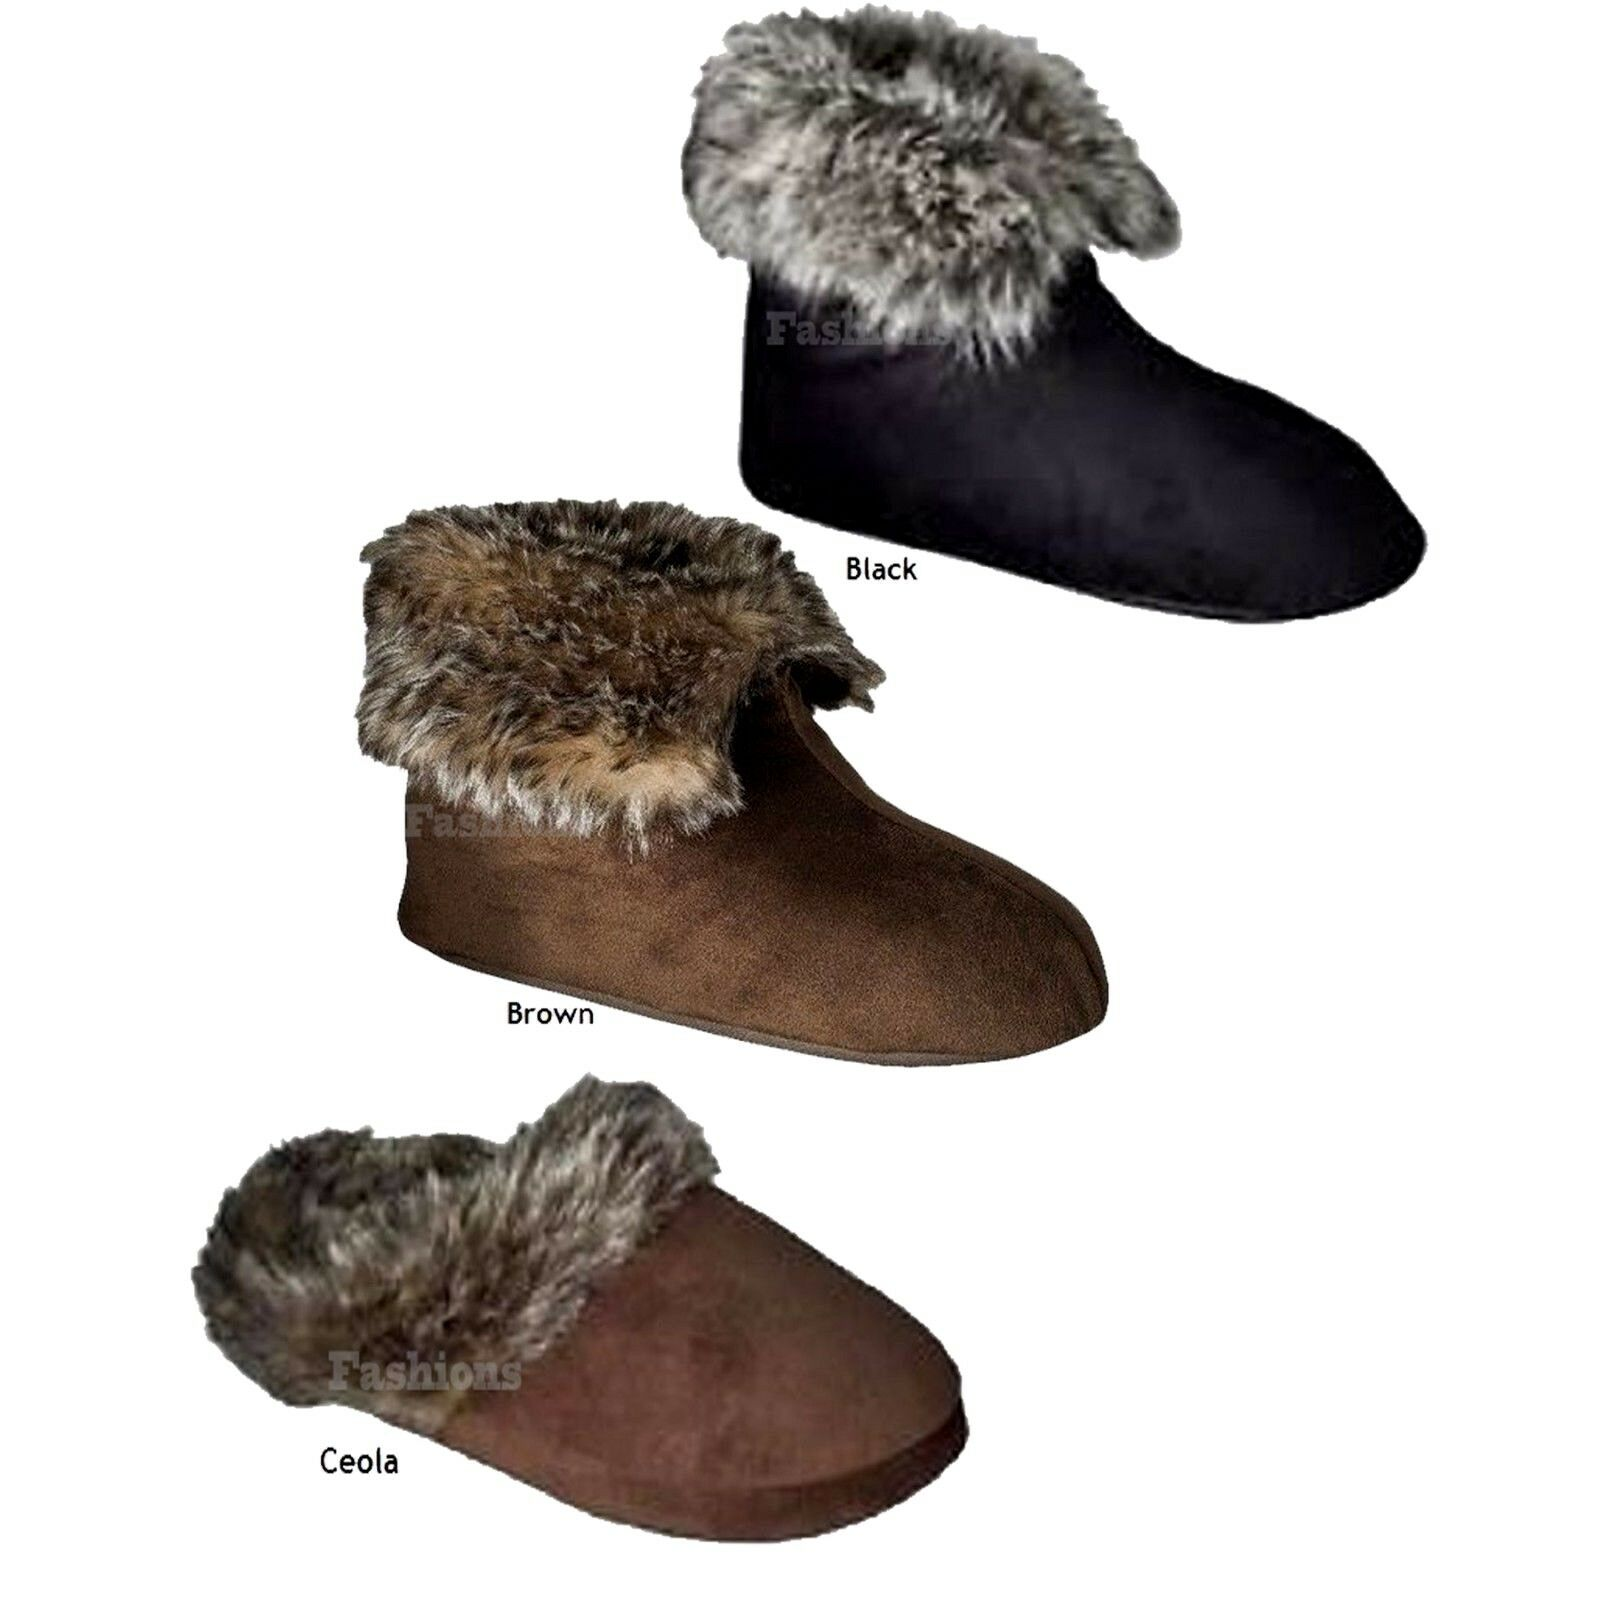 Choice Color /& Style Merona Charolette or Ceola Plush Faux Fur Slippers New NWOB